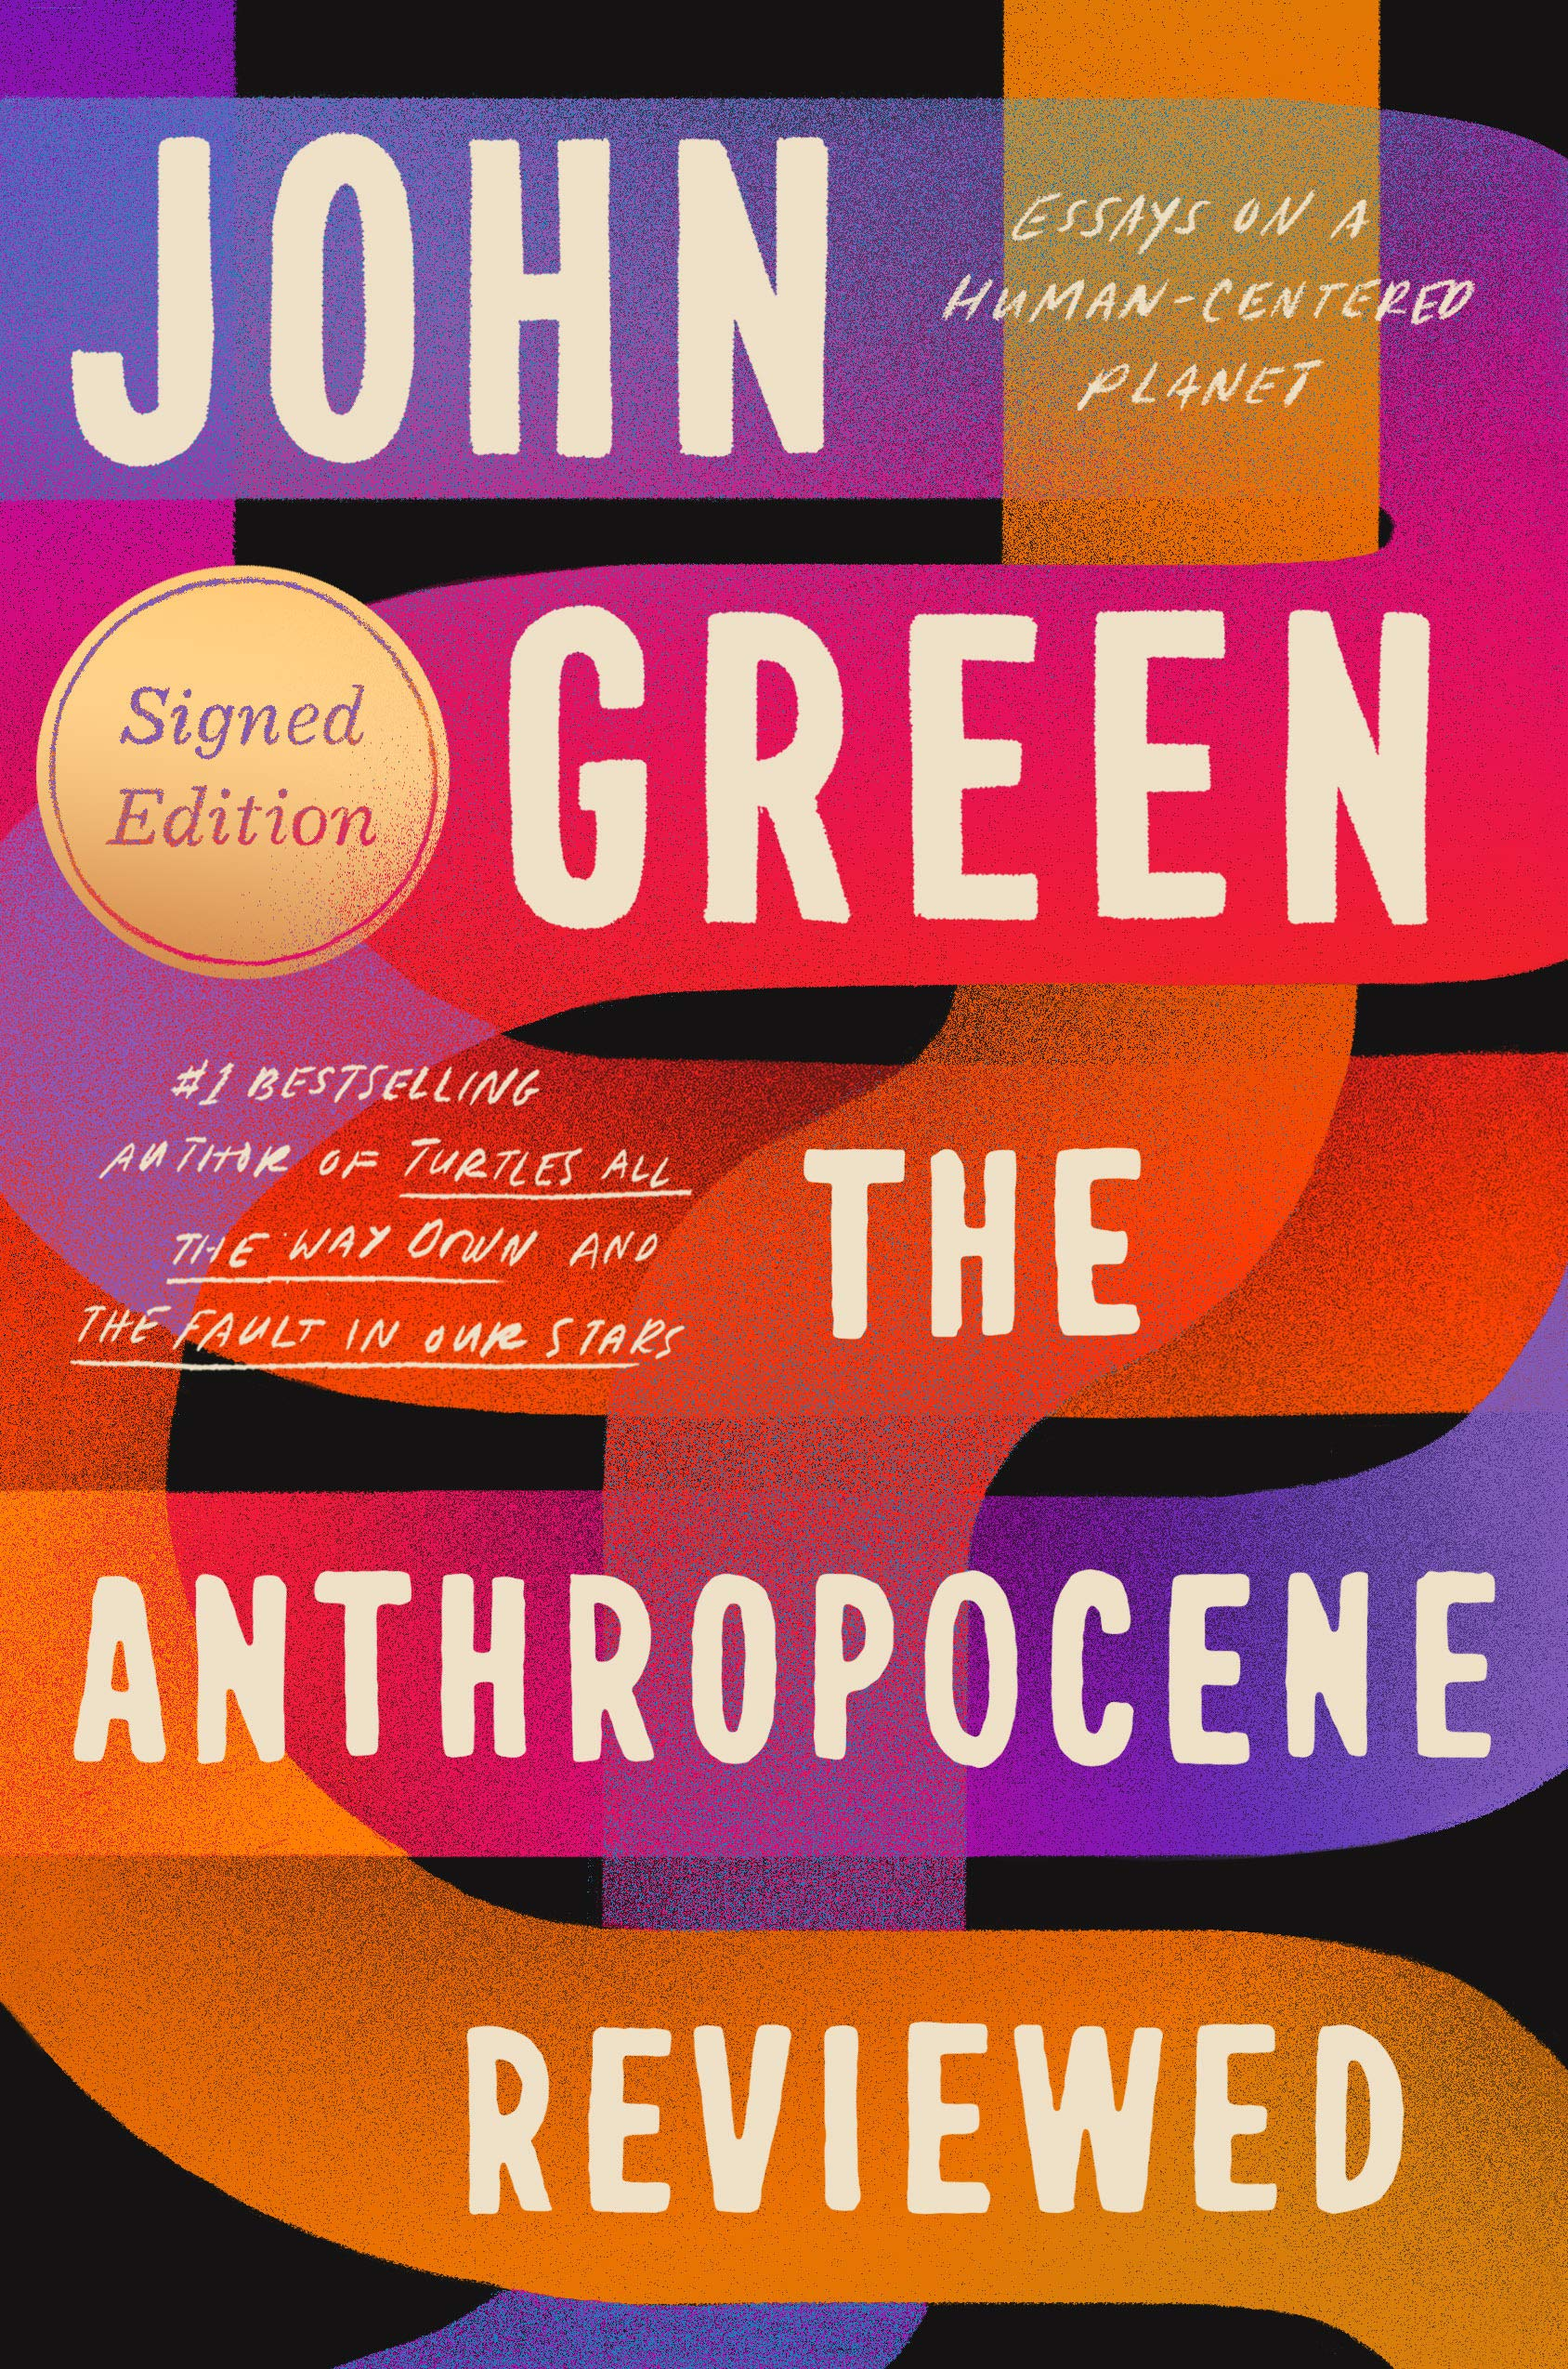 Anthropocene Reviewed Book Cover